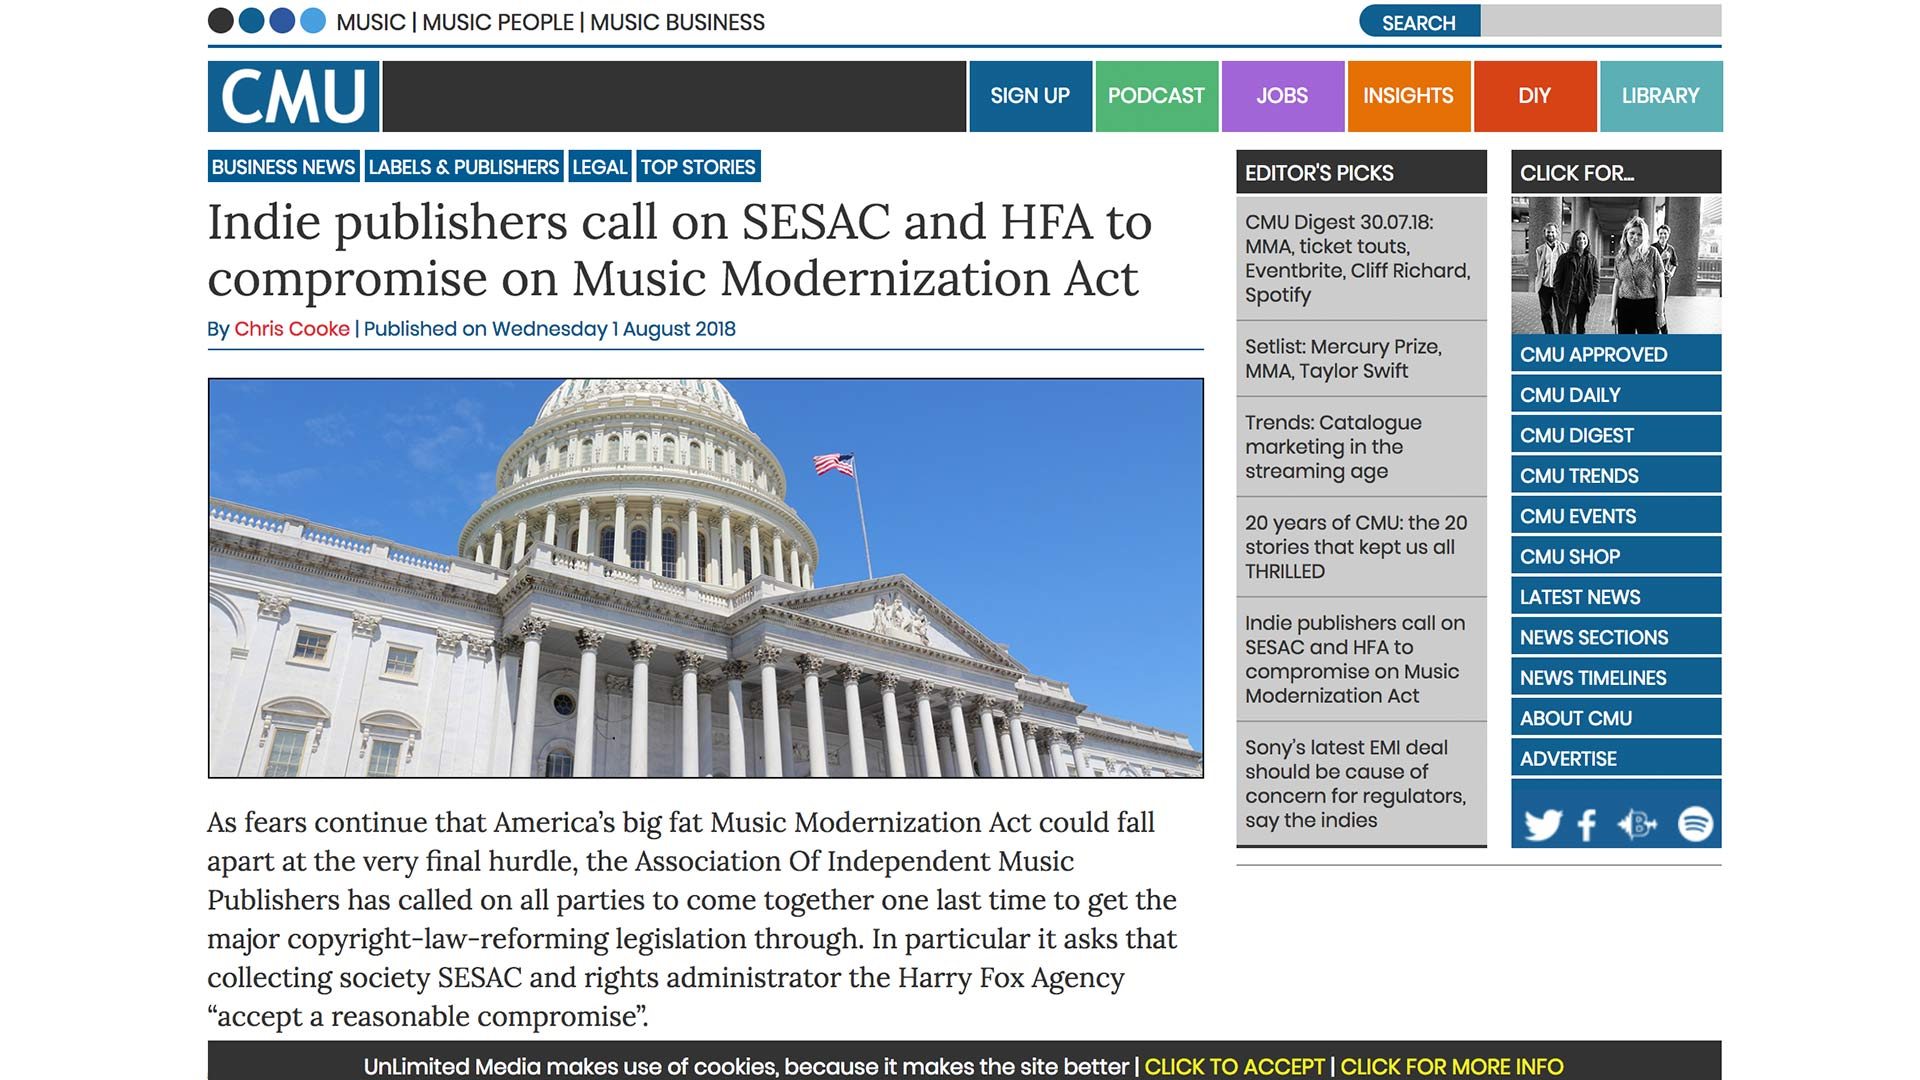 Fairness Rocks News Indie publishers call on SESAC and HFA to compromise on Music Modernization Act